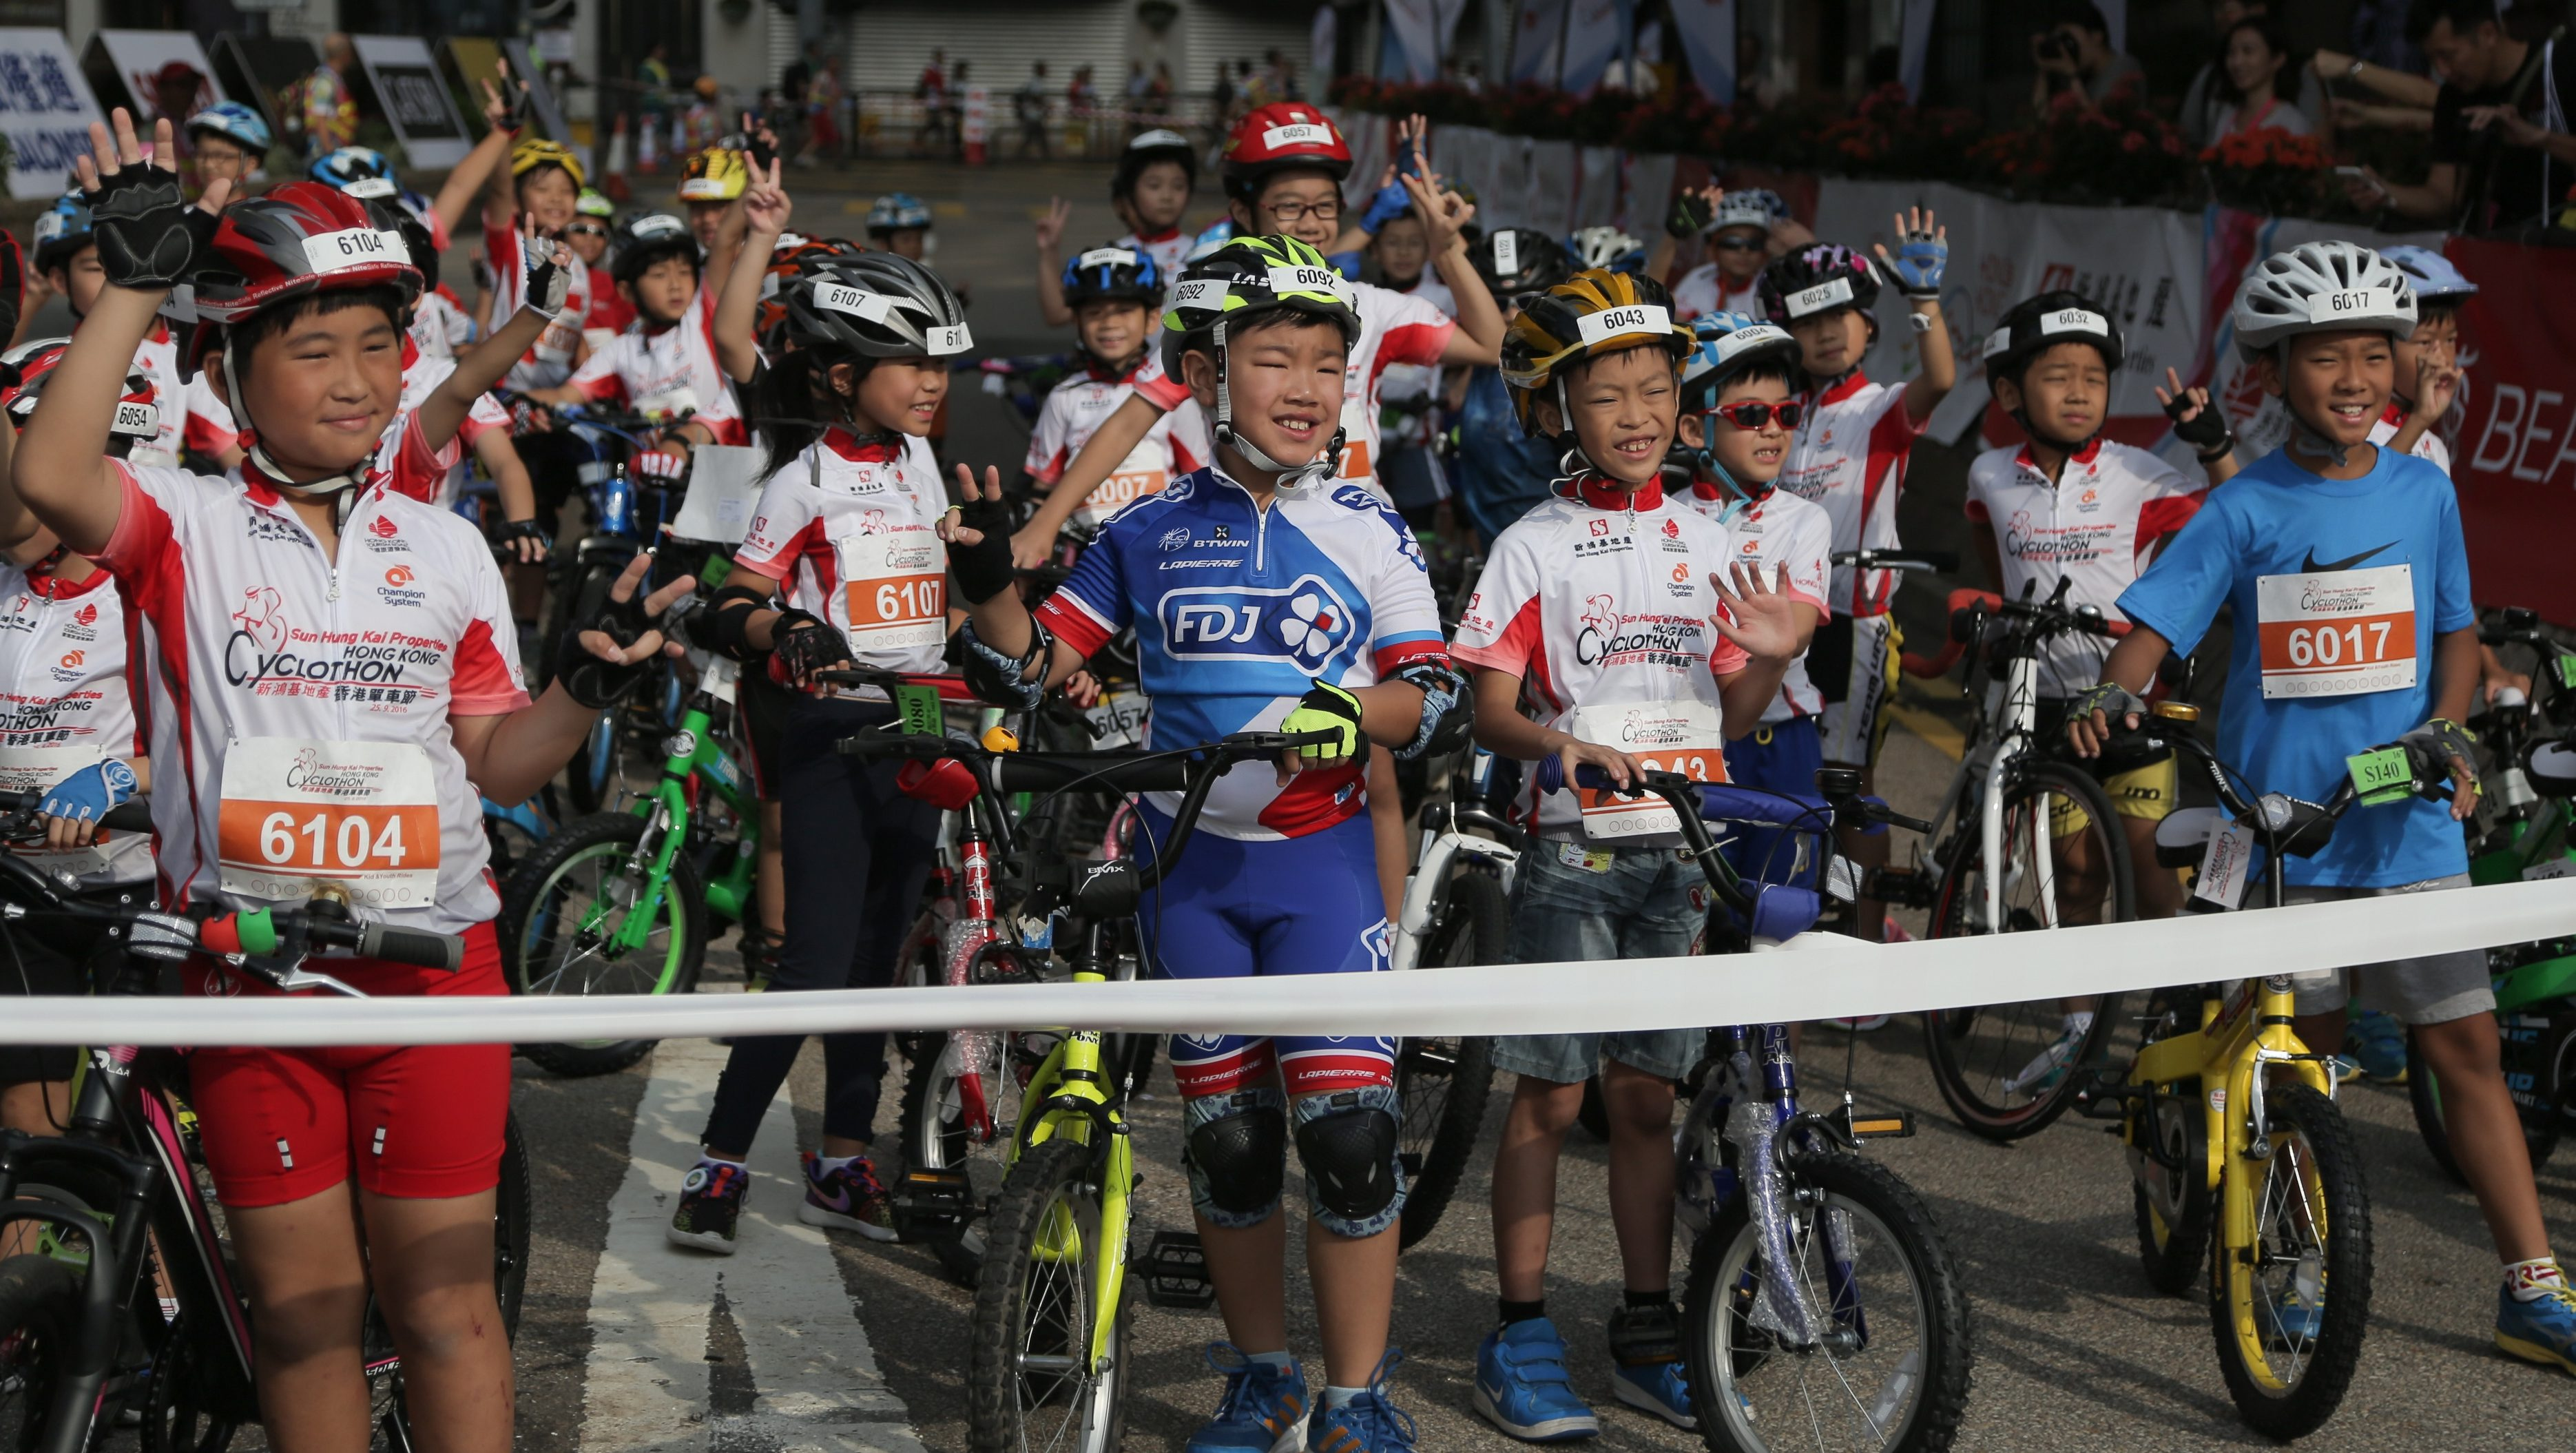 Cycling - Hong Kong Cyclothon 2016 - Hong Kong - 25/09/16 Children in action during the Kids and Youth Rides. The Hong Kong Cyclothon is the biggest cycling event in Hong Kong and features four races and five cycling activities.